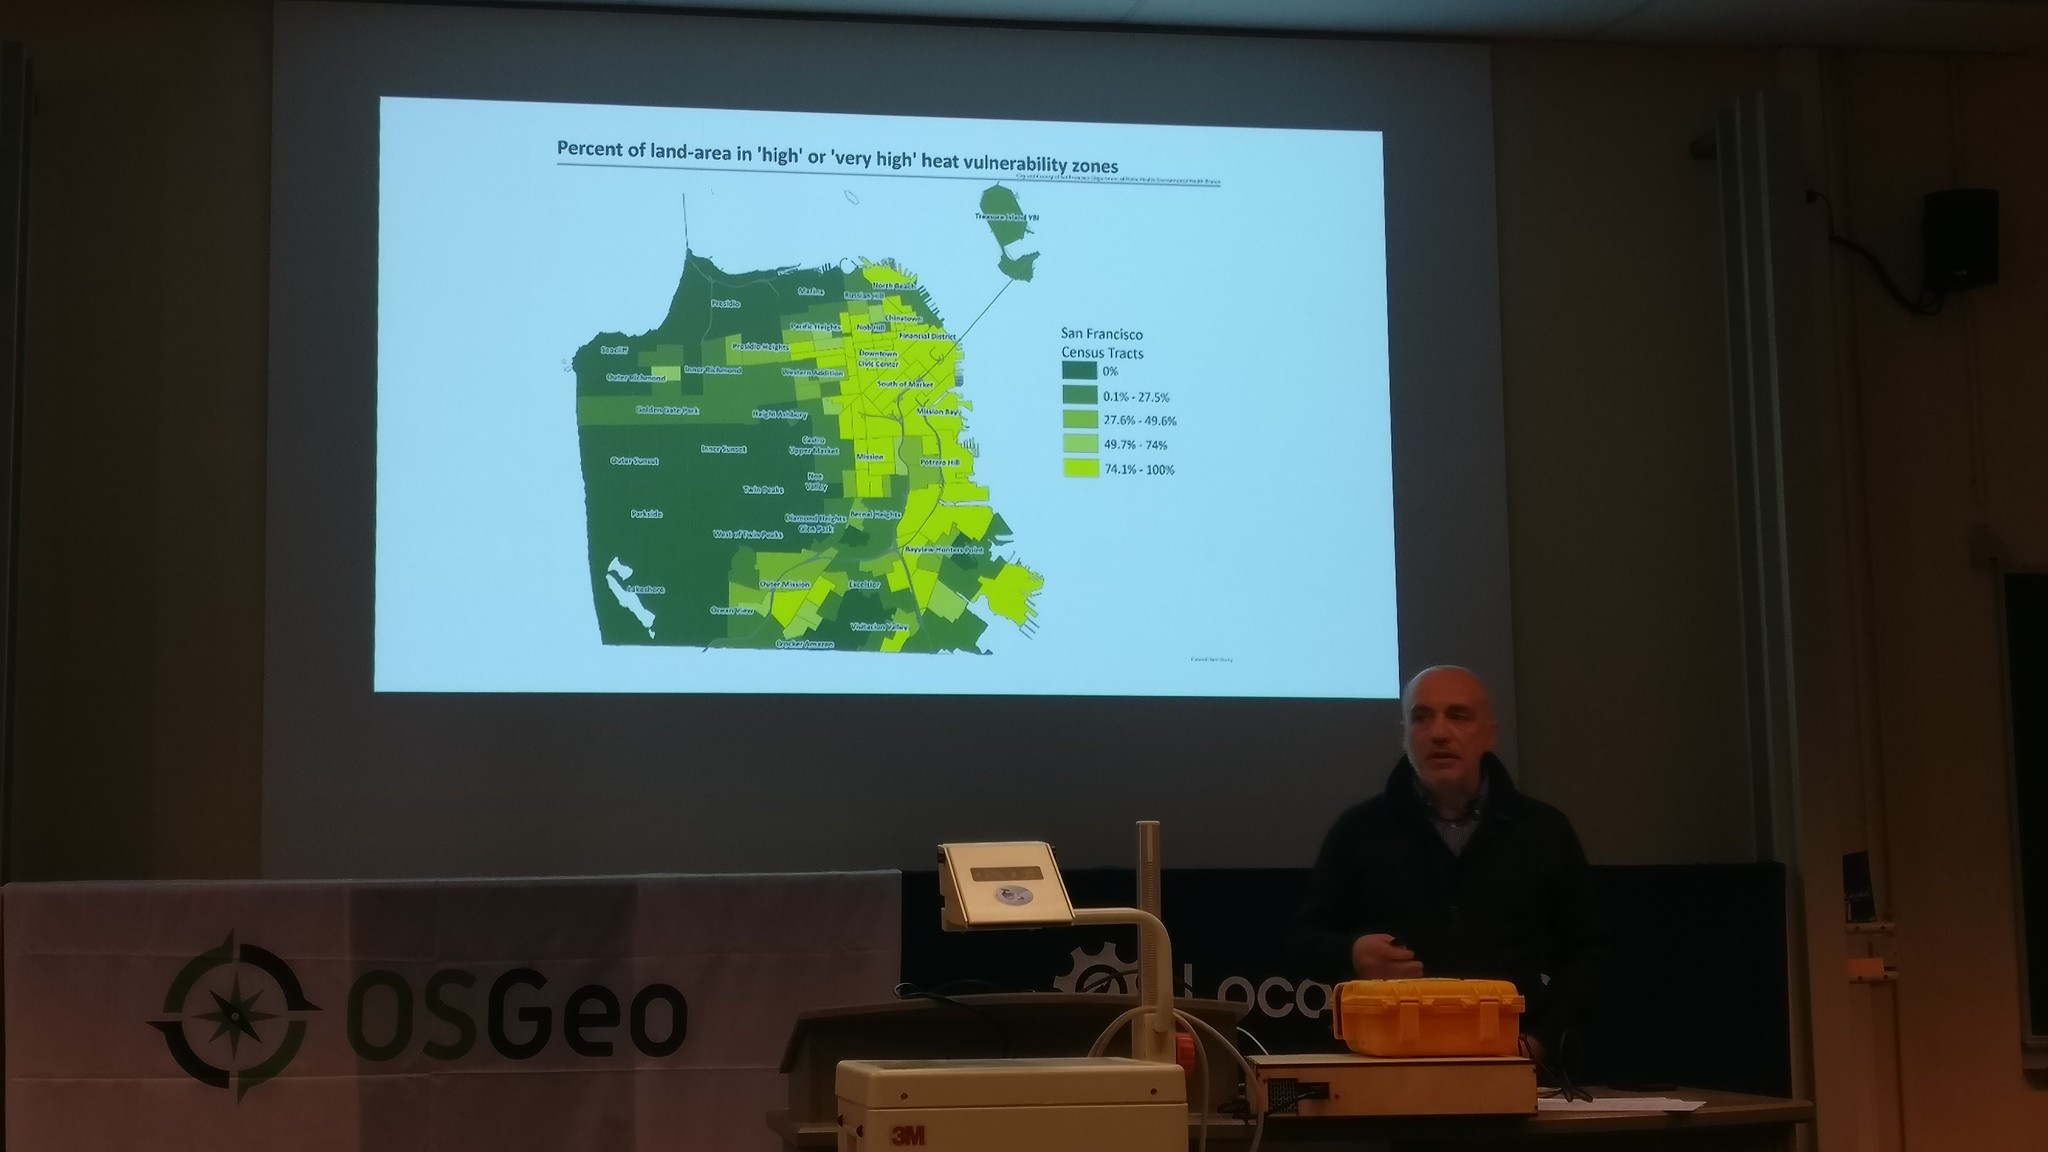 FOSDEM 2019 - Stefano Maffulli presenting his OSM based project for emergency preparation